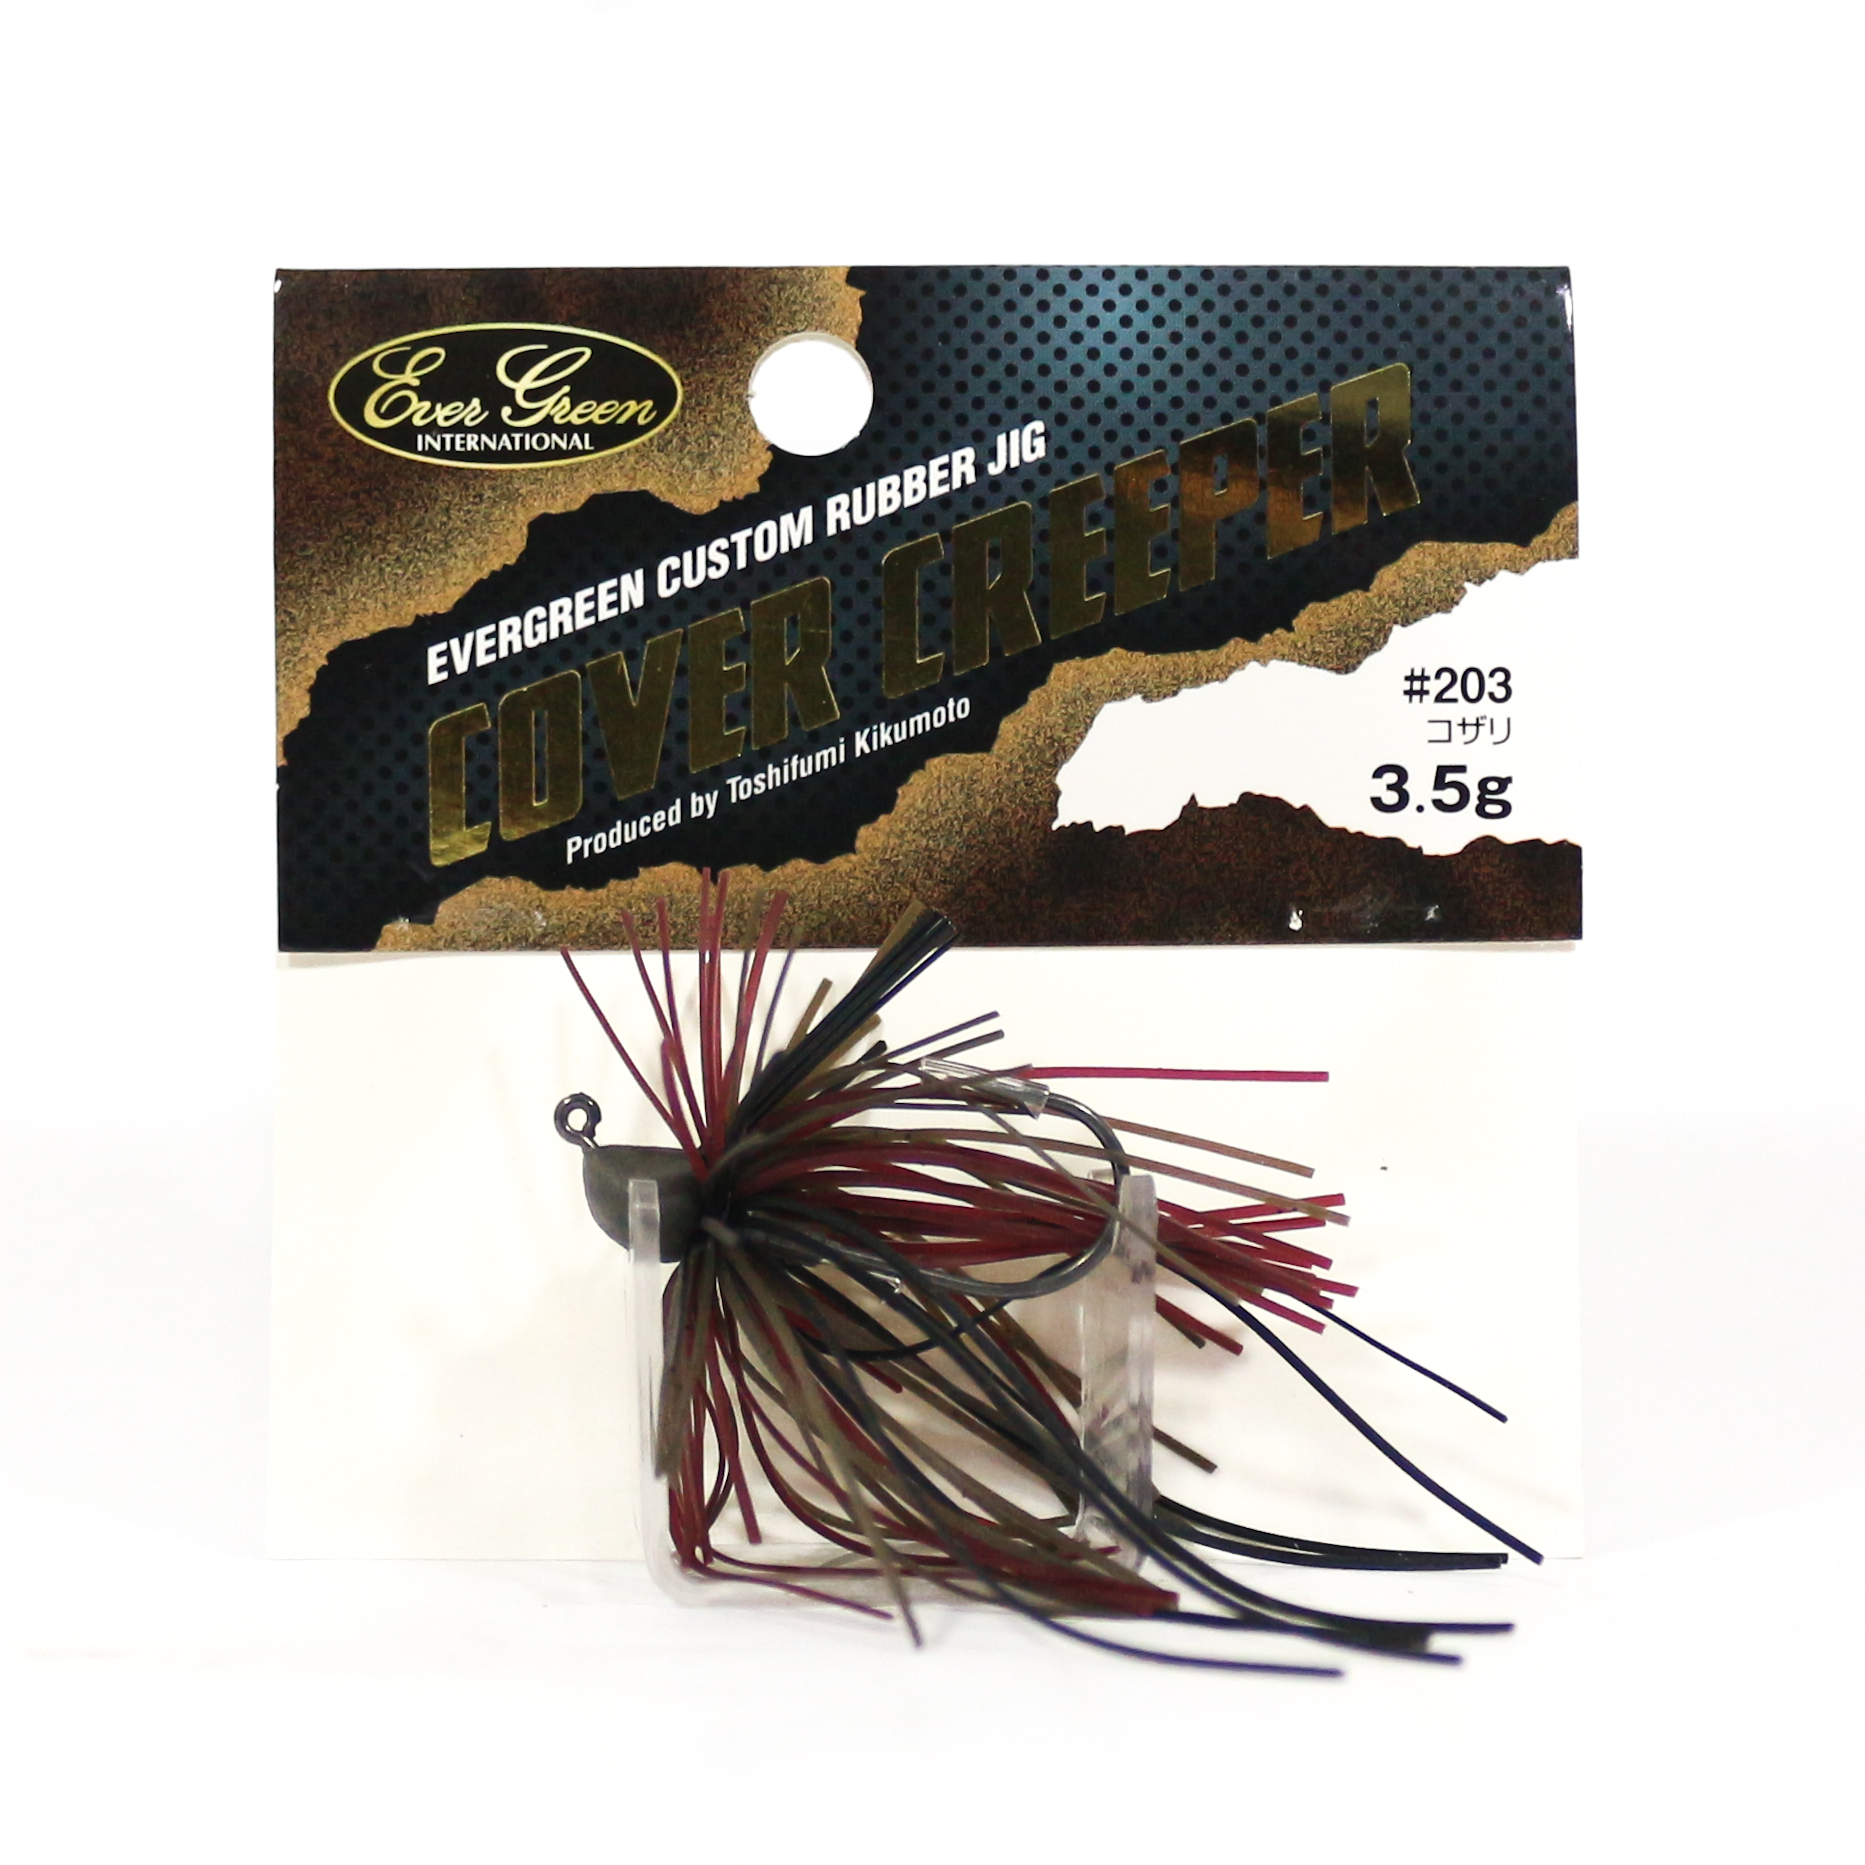 Evergreen Rubber Jig Cover Creeper 3.5g Sinking Lure 203 (3436)